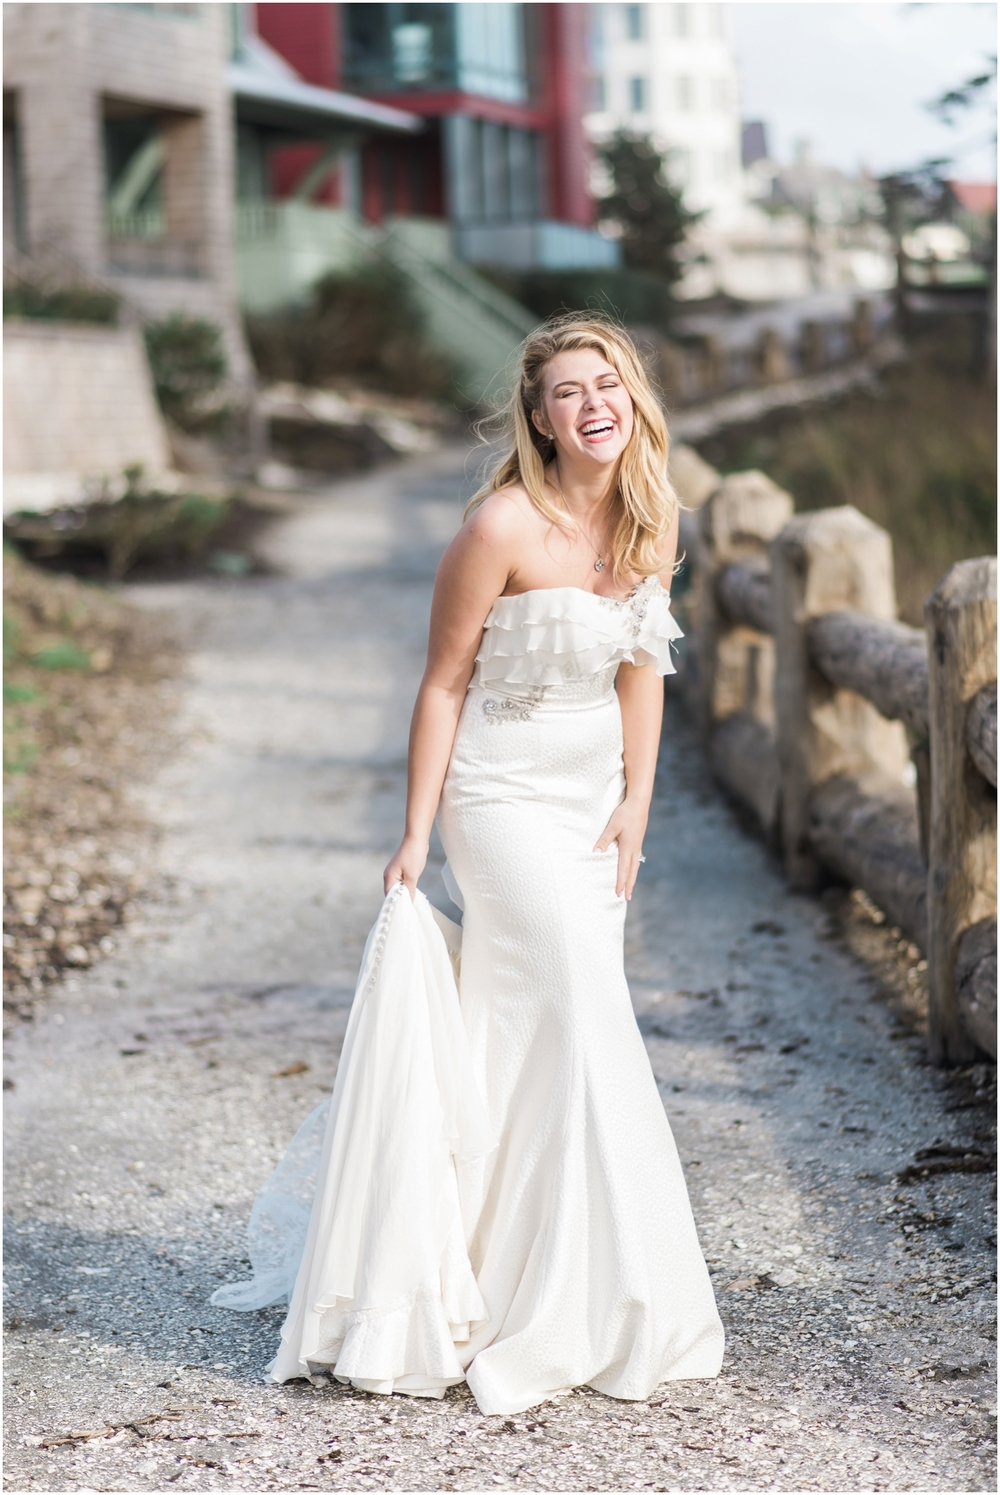 Anny Lin MILLICENT Style#14208 ruffled Wanderlust adventure coastal wedding at Seabrook